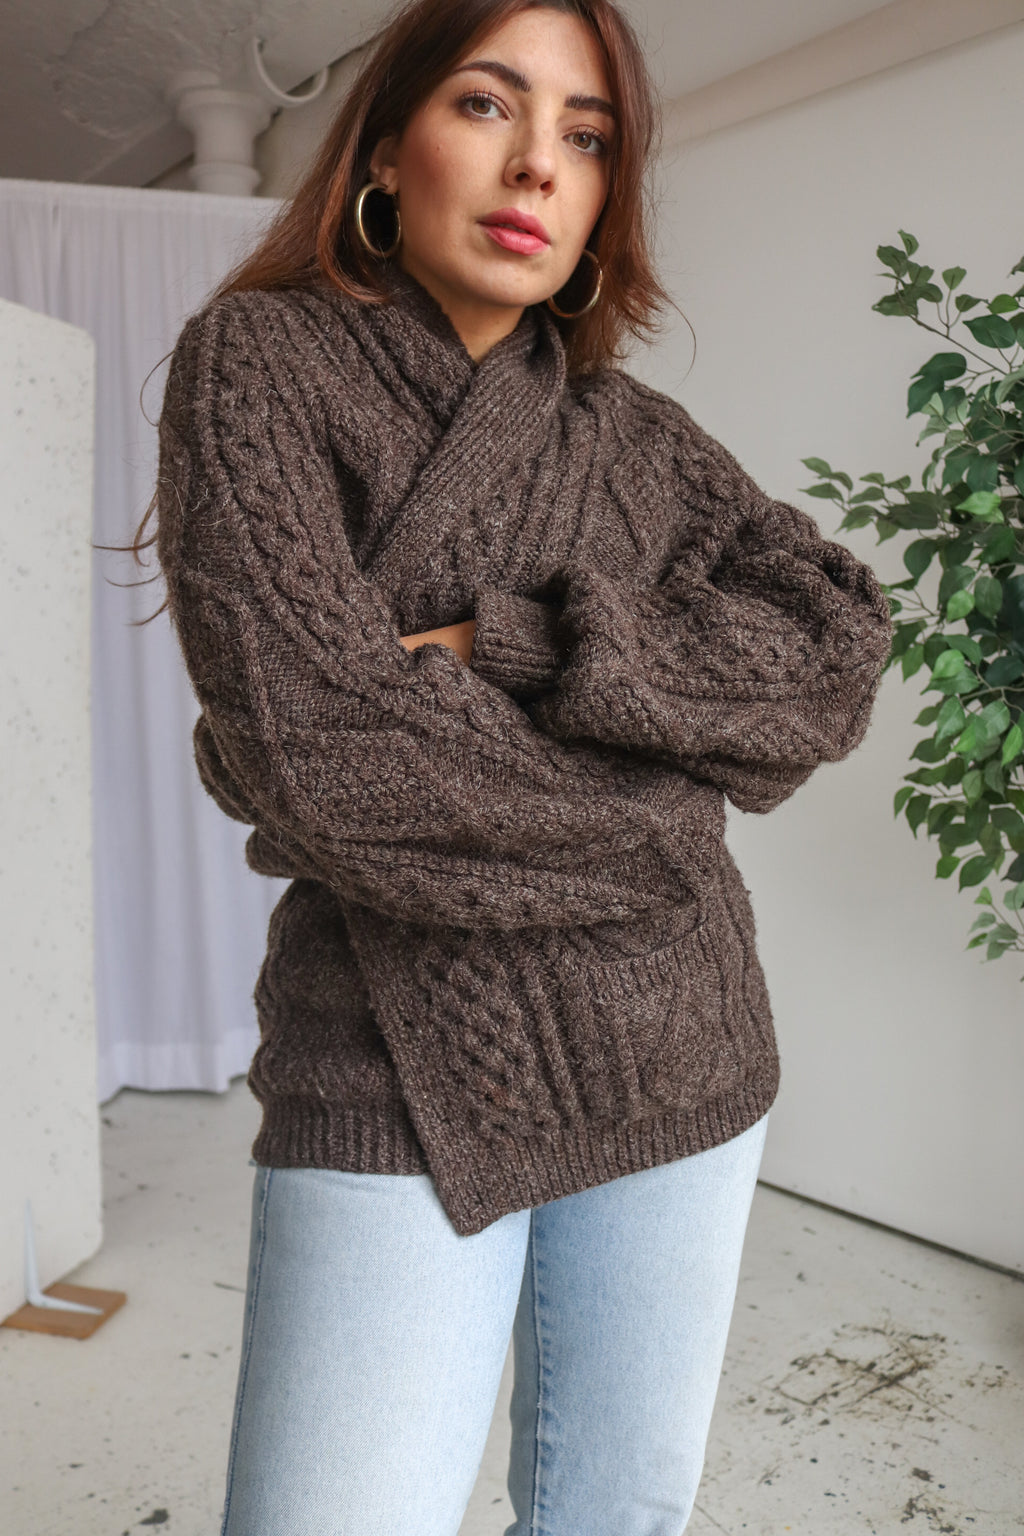 VintageHand-Knitted Aran Knit Cardigan in Brown - Dirty Disco